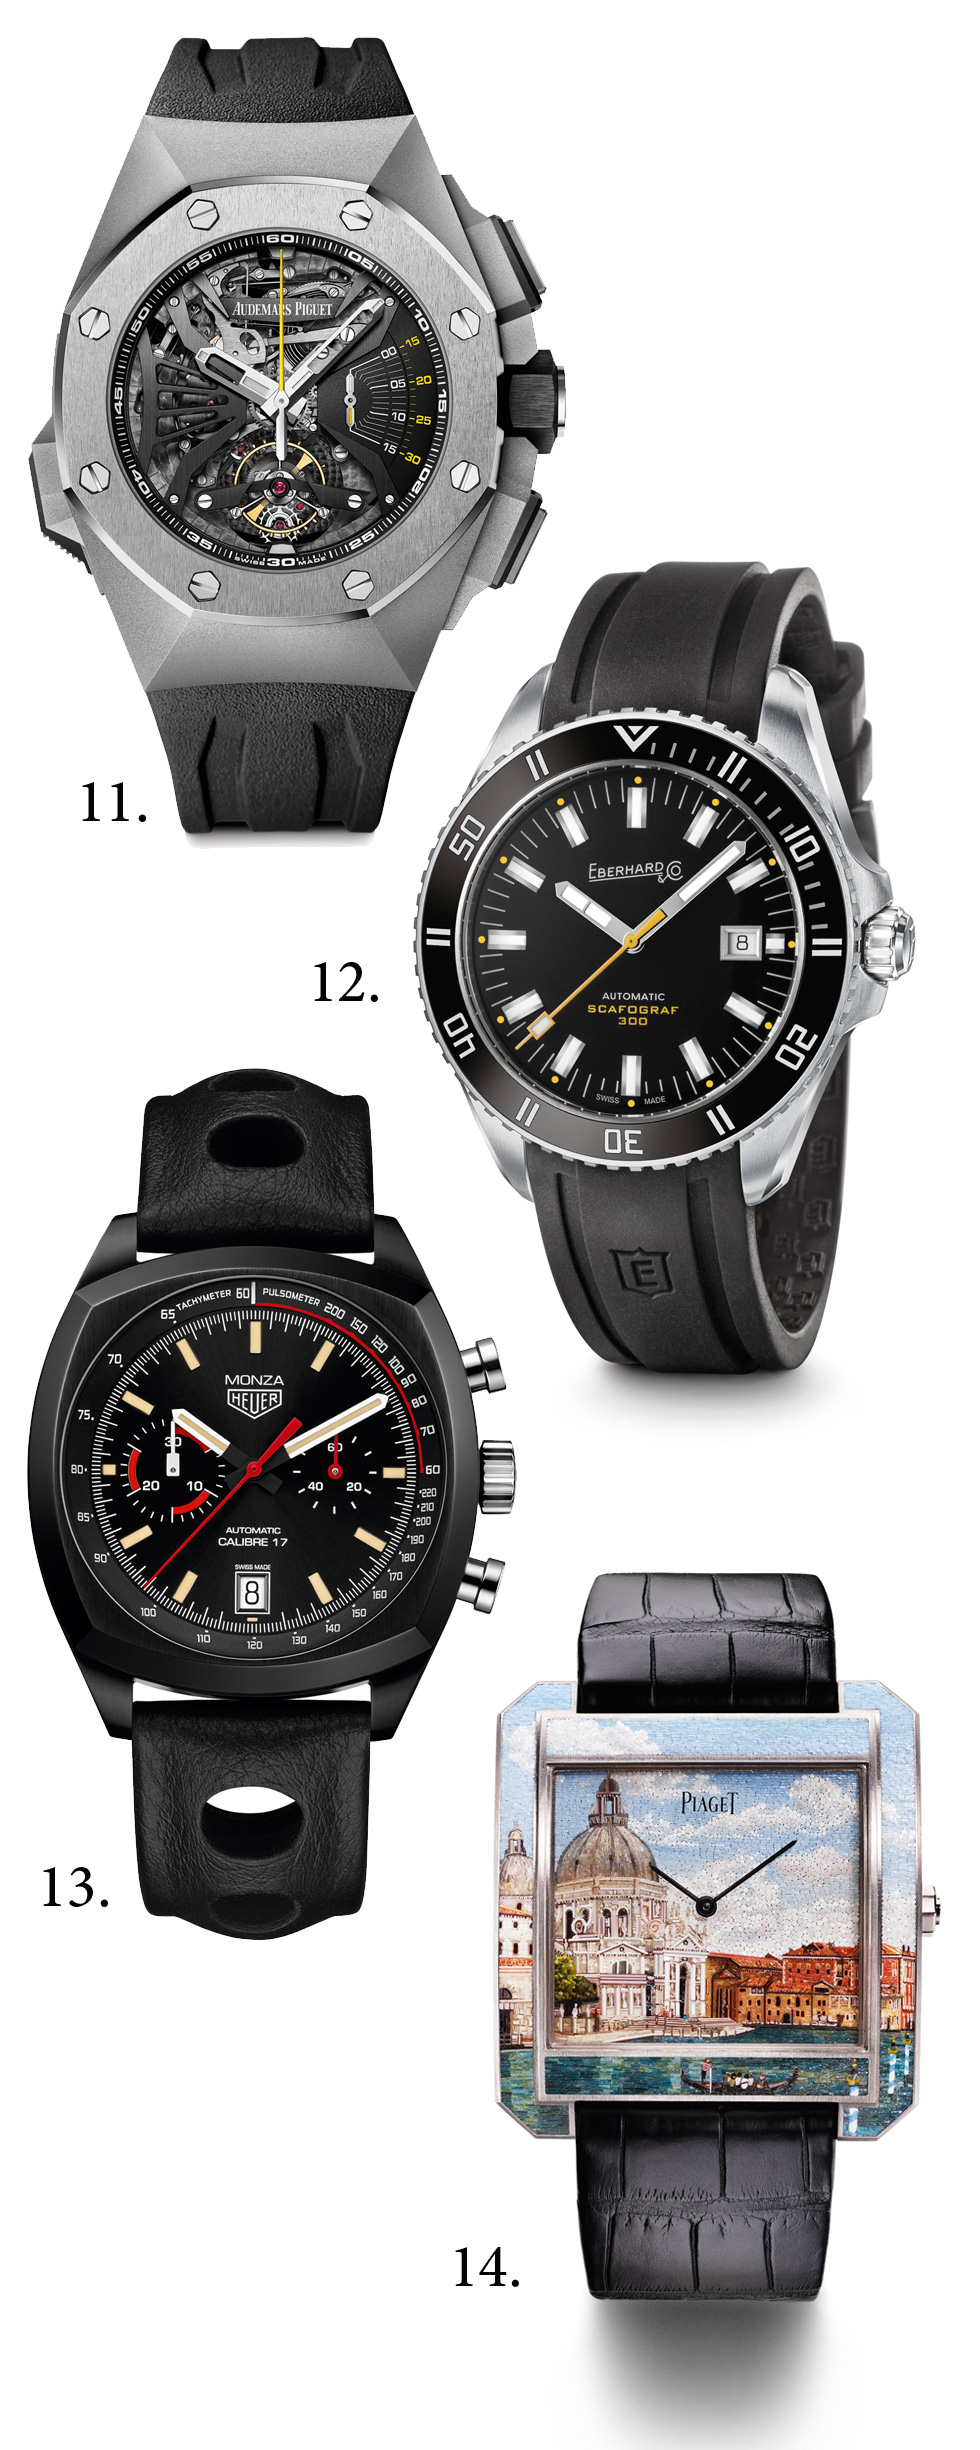 "11. Mechanical Exception Prize: Audemars Piguet, Royal Oak Concept Supersonnerie; 12. Sports Watch Prize: Eberhard & Co, Scafograf 300; 13. ""Revival"" Watch Prize: TAG Heuer, Heuer Monza Chronographe; 14. Artistic Crafts Watch Prize: Piaget, Protocole XXL ""Secrets & Lights"" Venice Micro-Mosaic"